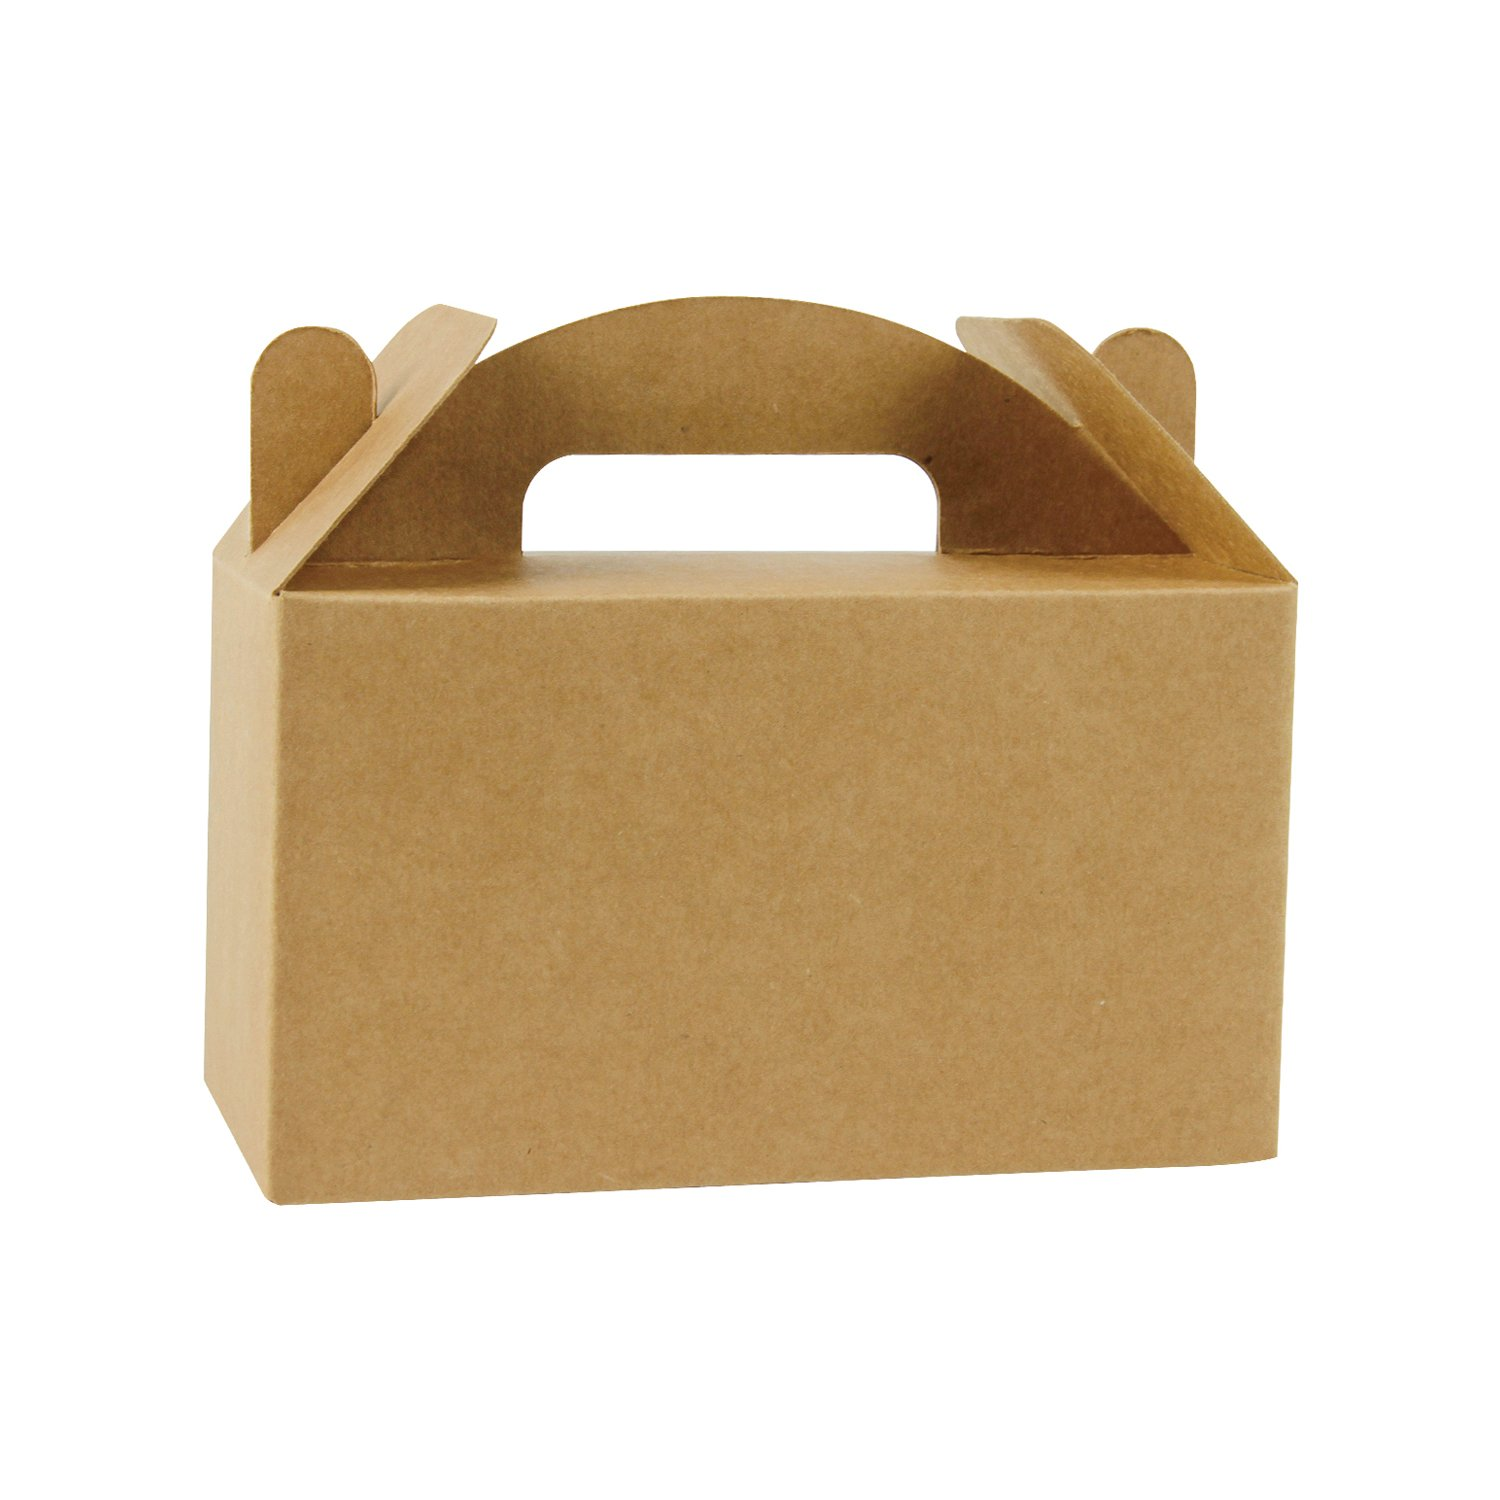 LaRibbons 24 Pack Brown Color Treat Boxes Birthday Party Favors Shower Favor Box, 6.25'' x 3.5'' x 3.5'' by LaRibbons